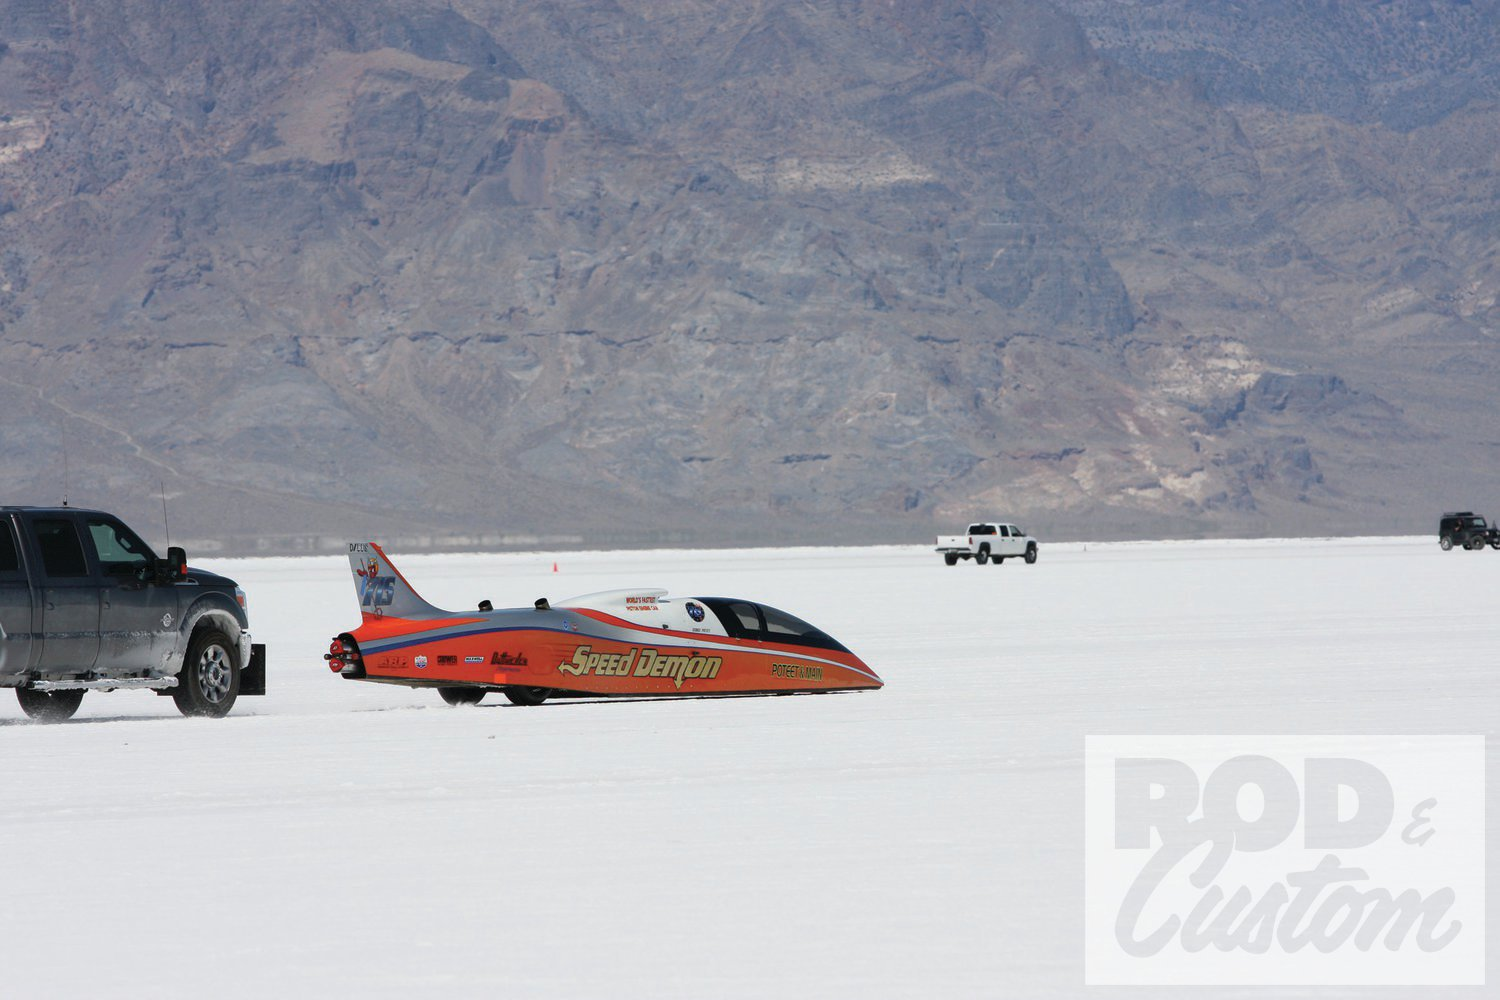 """We've concentrated on roadsters rather than streamliners or late models, as this is R&C after all, but it'd be remiss of us to not show George Poteet setting out on his record-setting run in """"Speed Demon"""", setting a new record of 437.183 in C/BFS."""